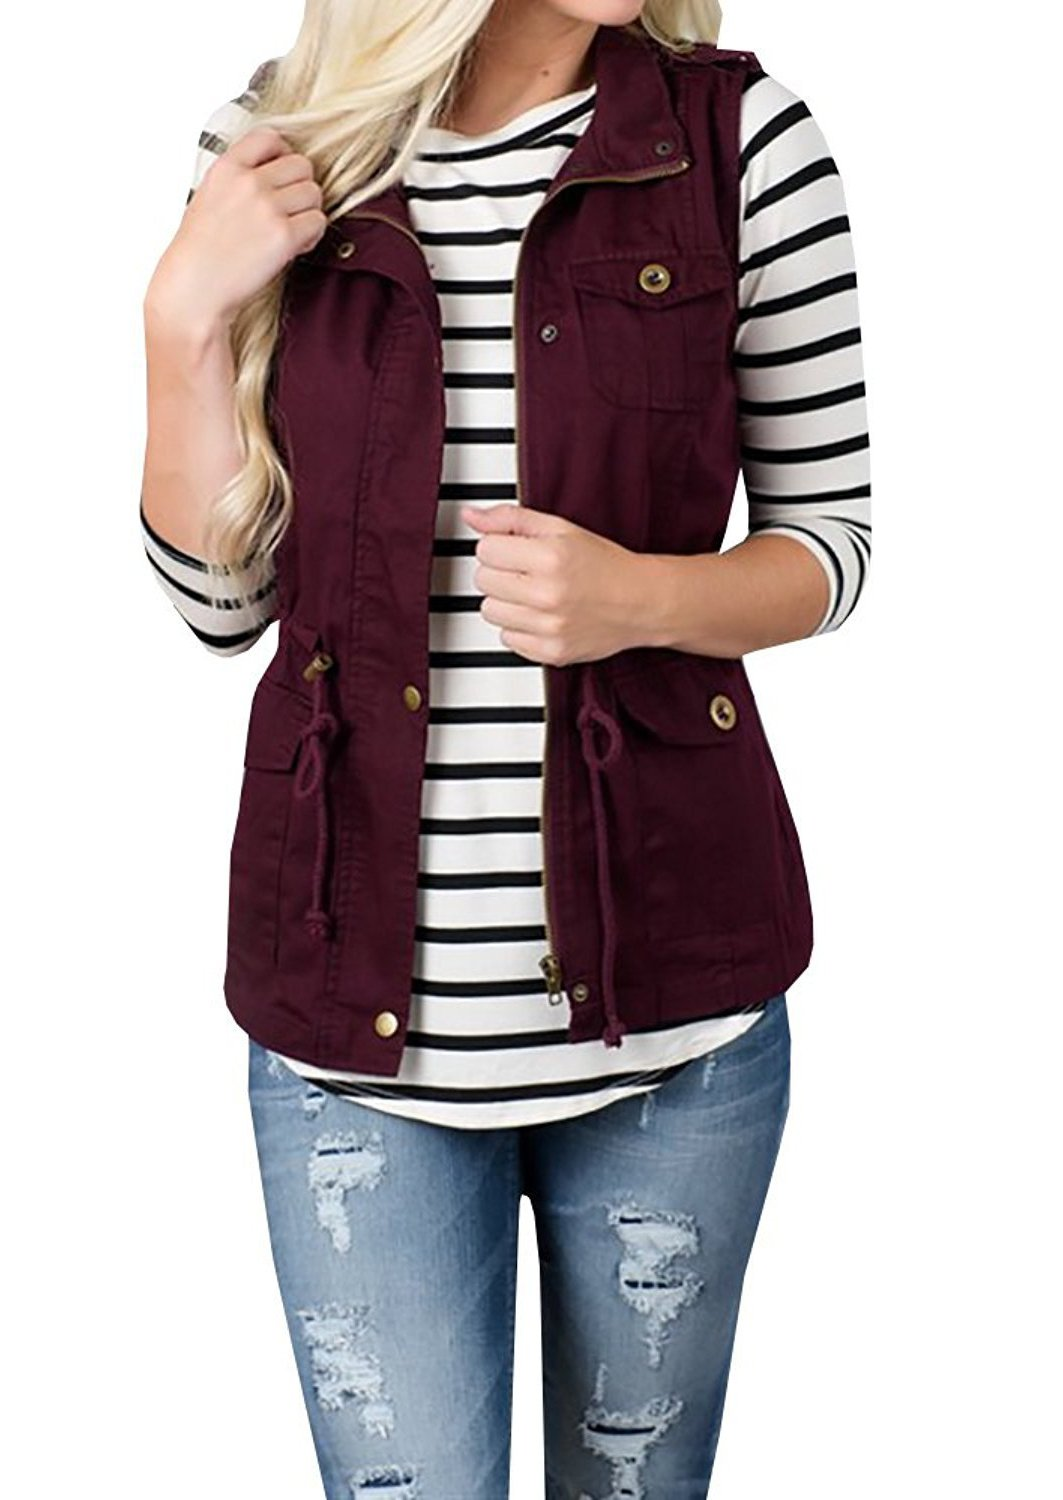 Annystore Women's Casual Lightweight Drawstring Zipper Botton Sleeveless Jacket Vest Coat with Pockets Wine Red M by Annystore